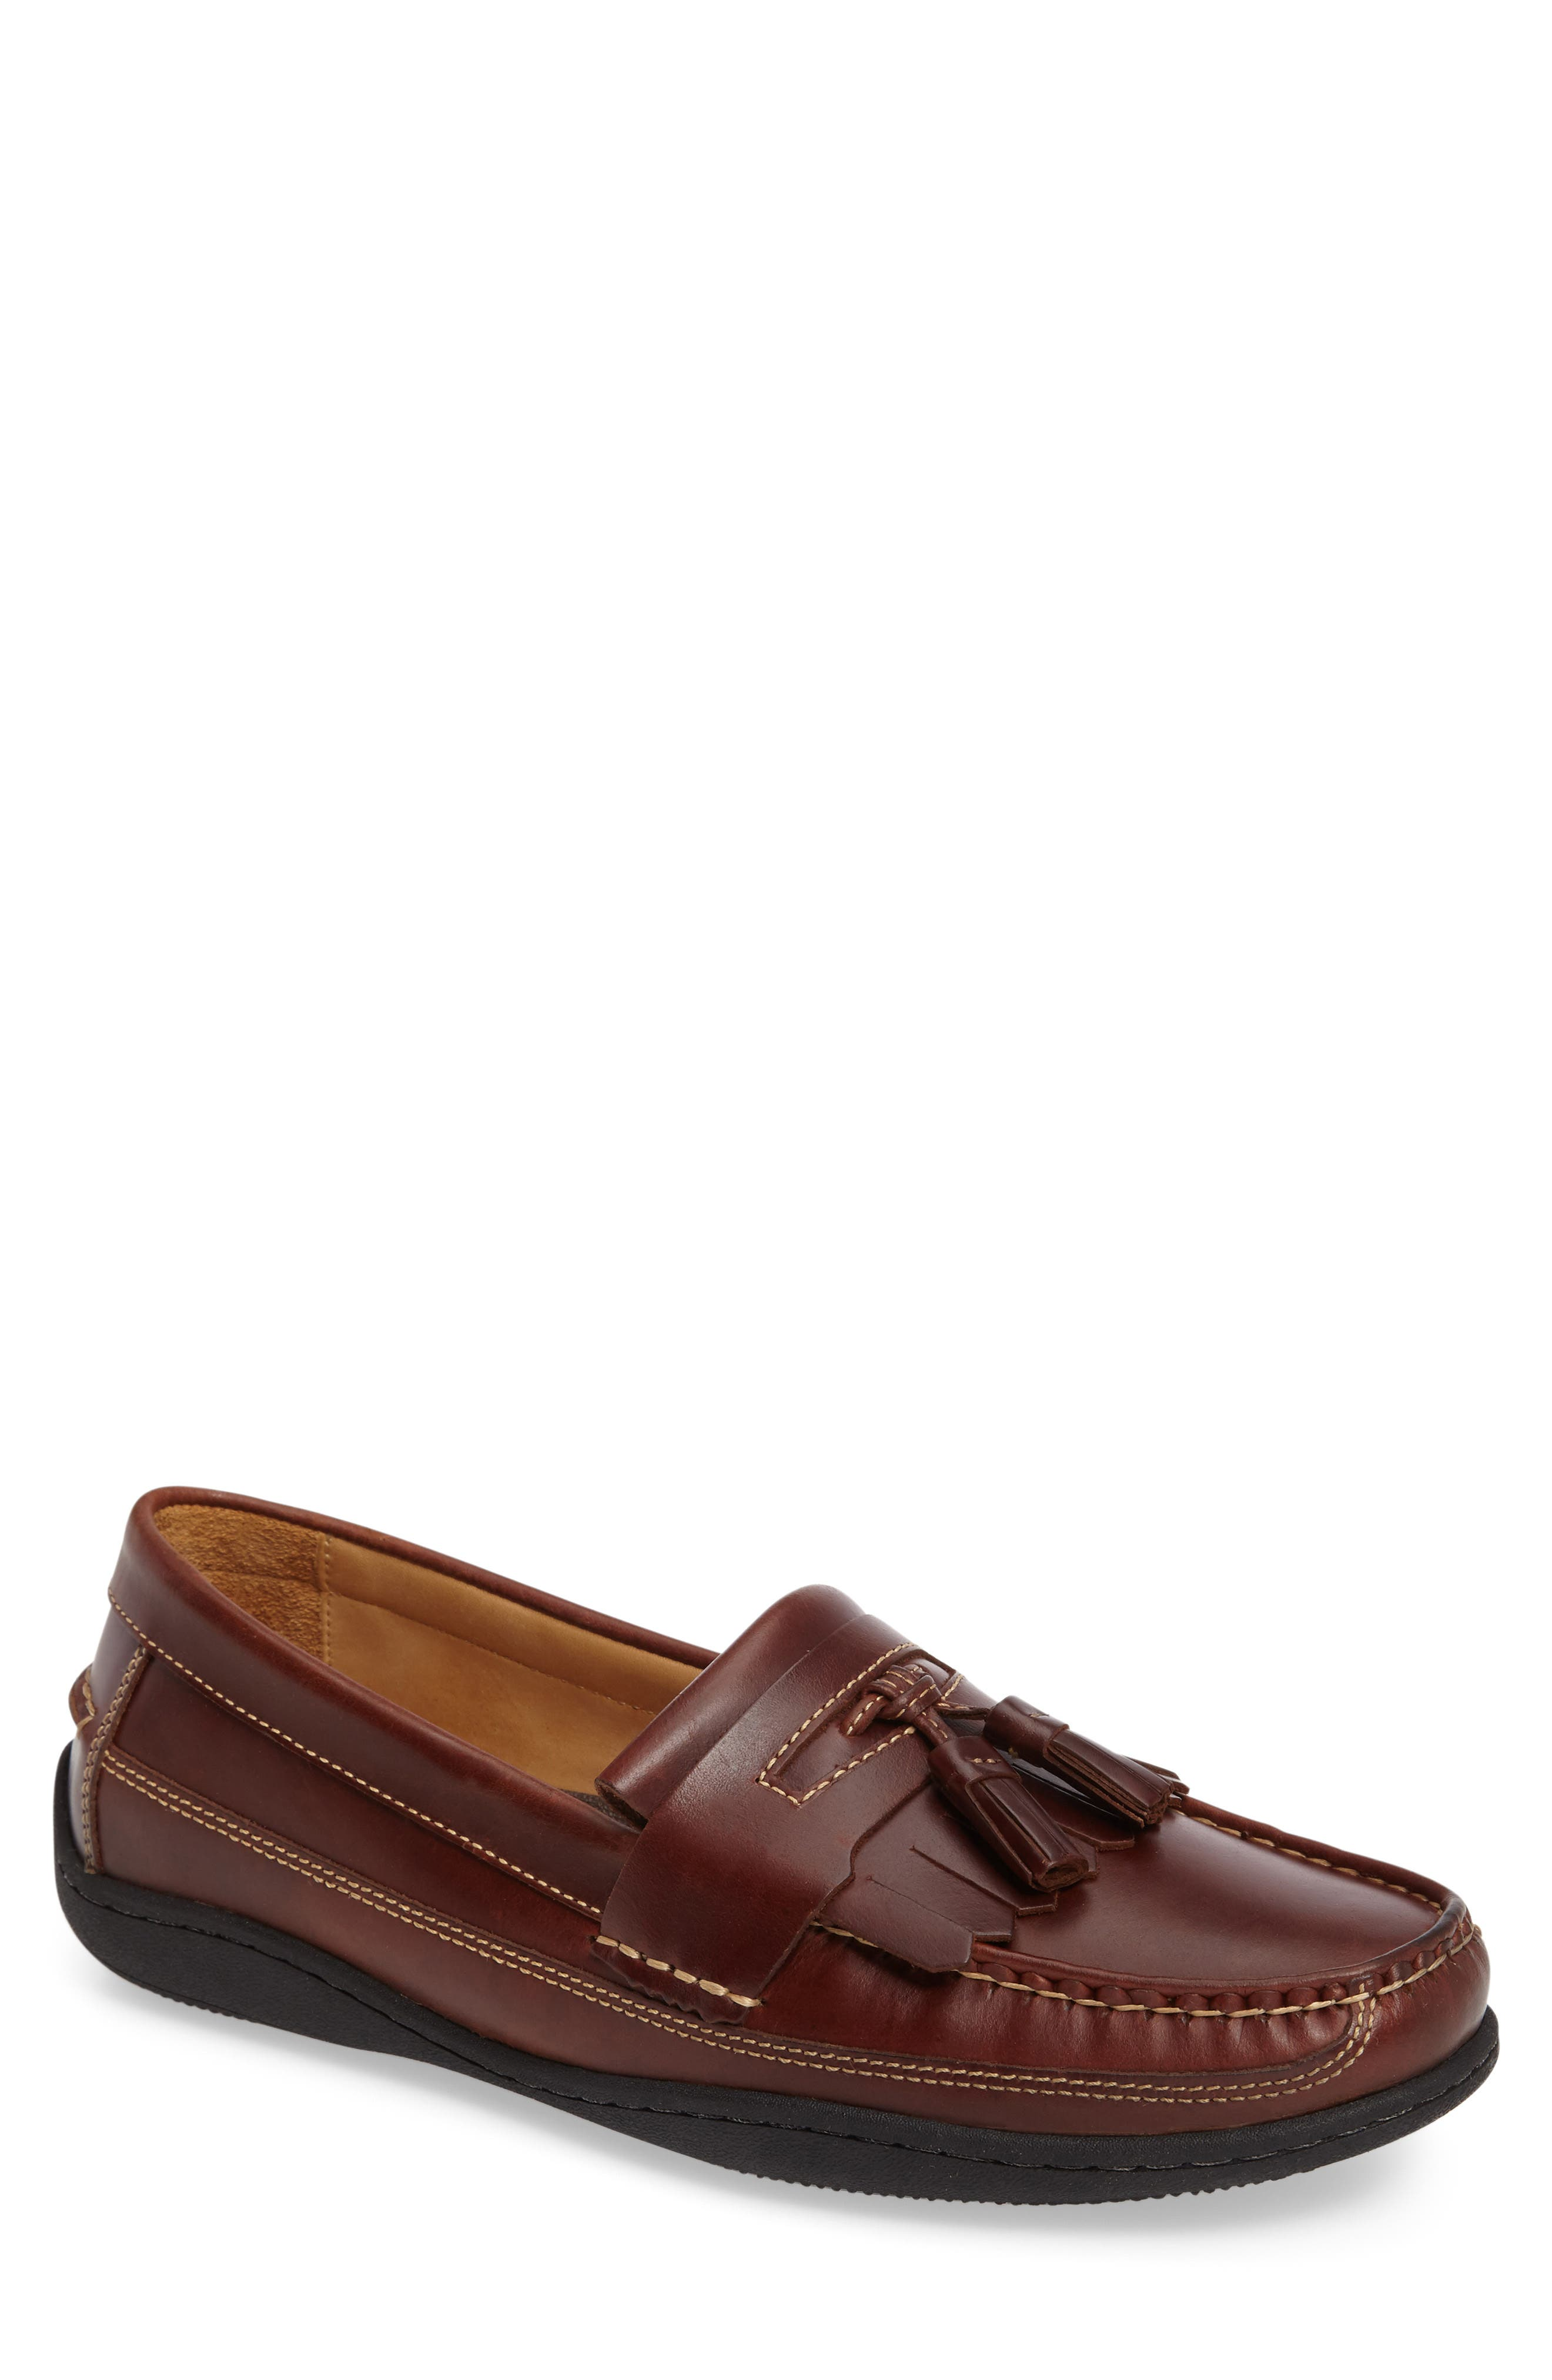 Fowler Kiltie Tassel Loafer,                             Main thumbnail 1, color,                             206